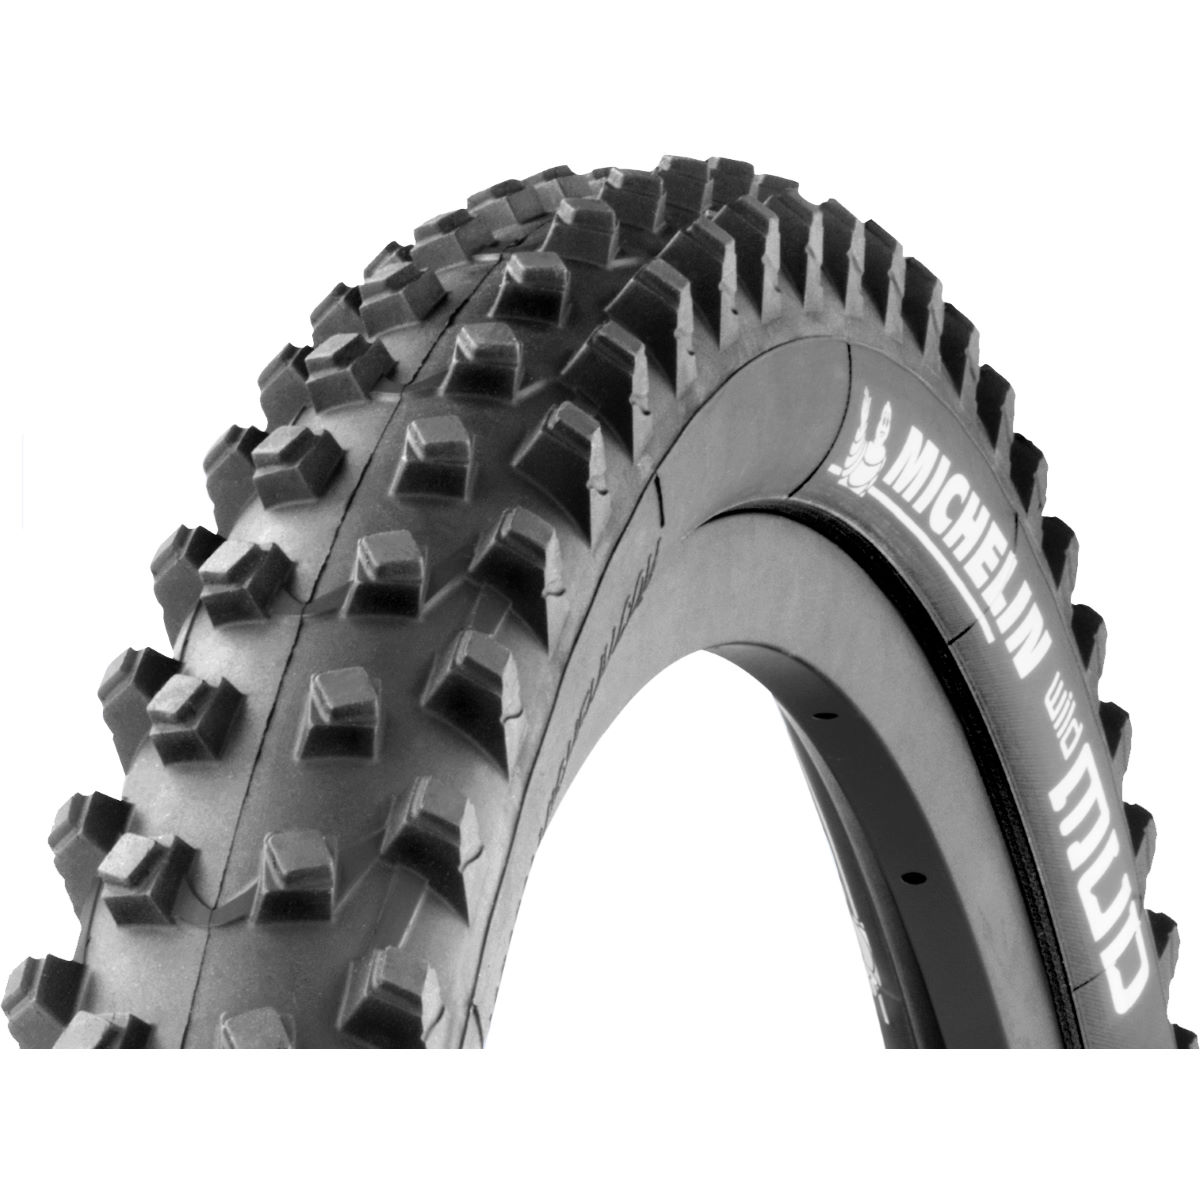 Pneu Michelin Wild Mud Advanced Reinforced 29 pouces (souple) - Noir